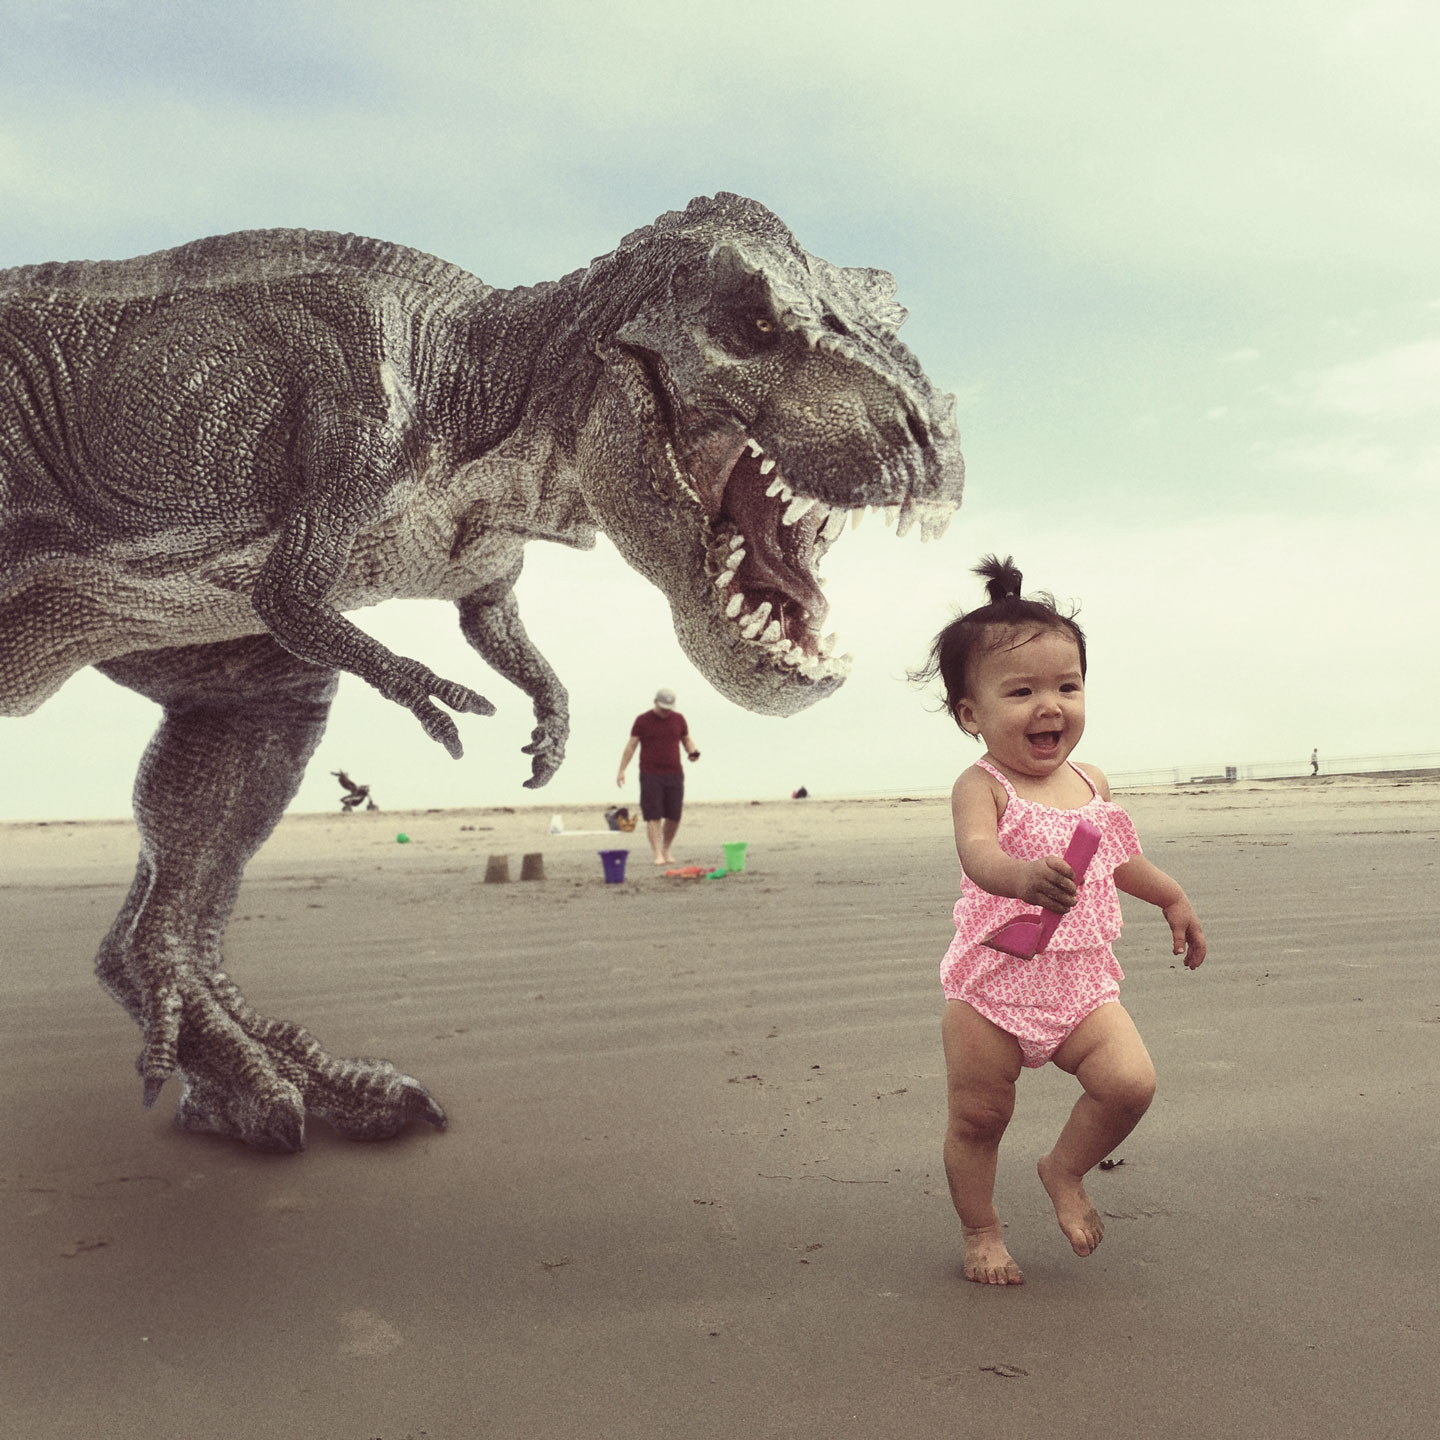 A tyrannosaurus rex chases after Olivia on the beach